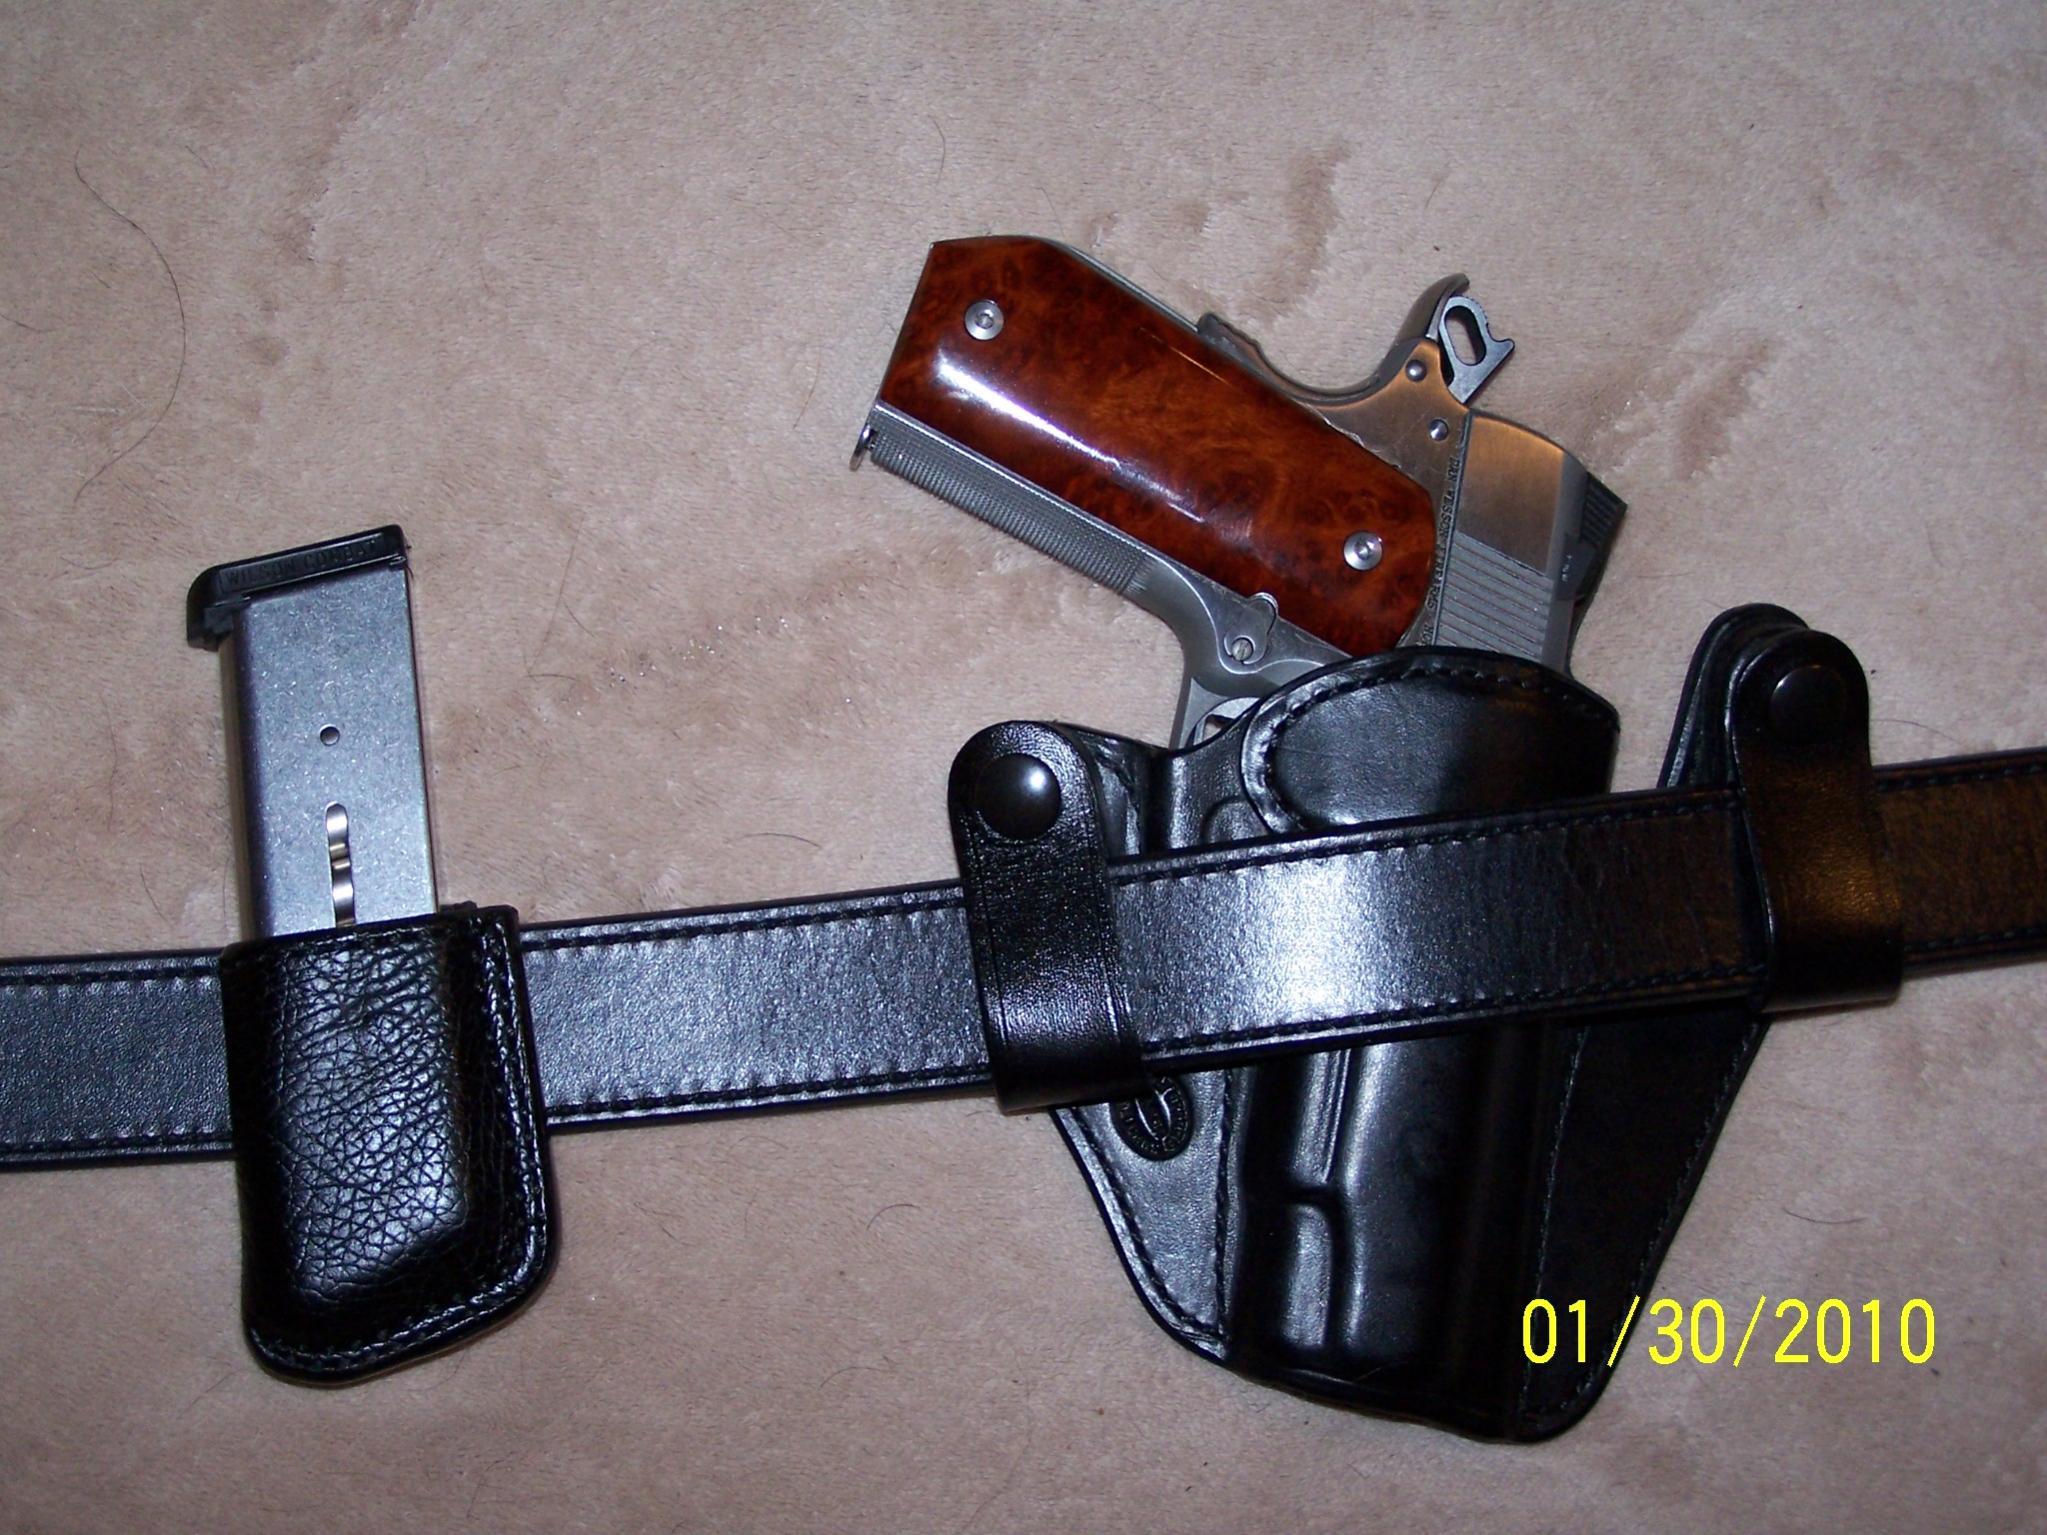 Let's See Your Pic's - How You Carry Concealed.-cbob-002.jpg